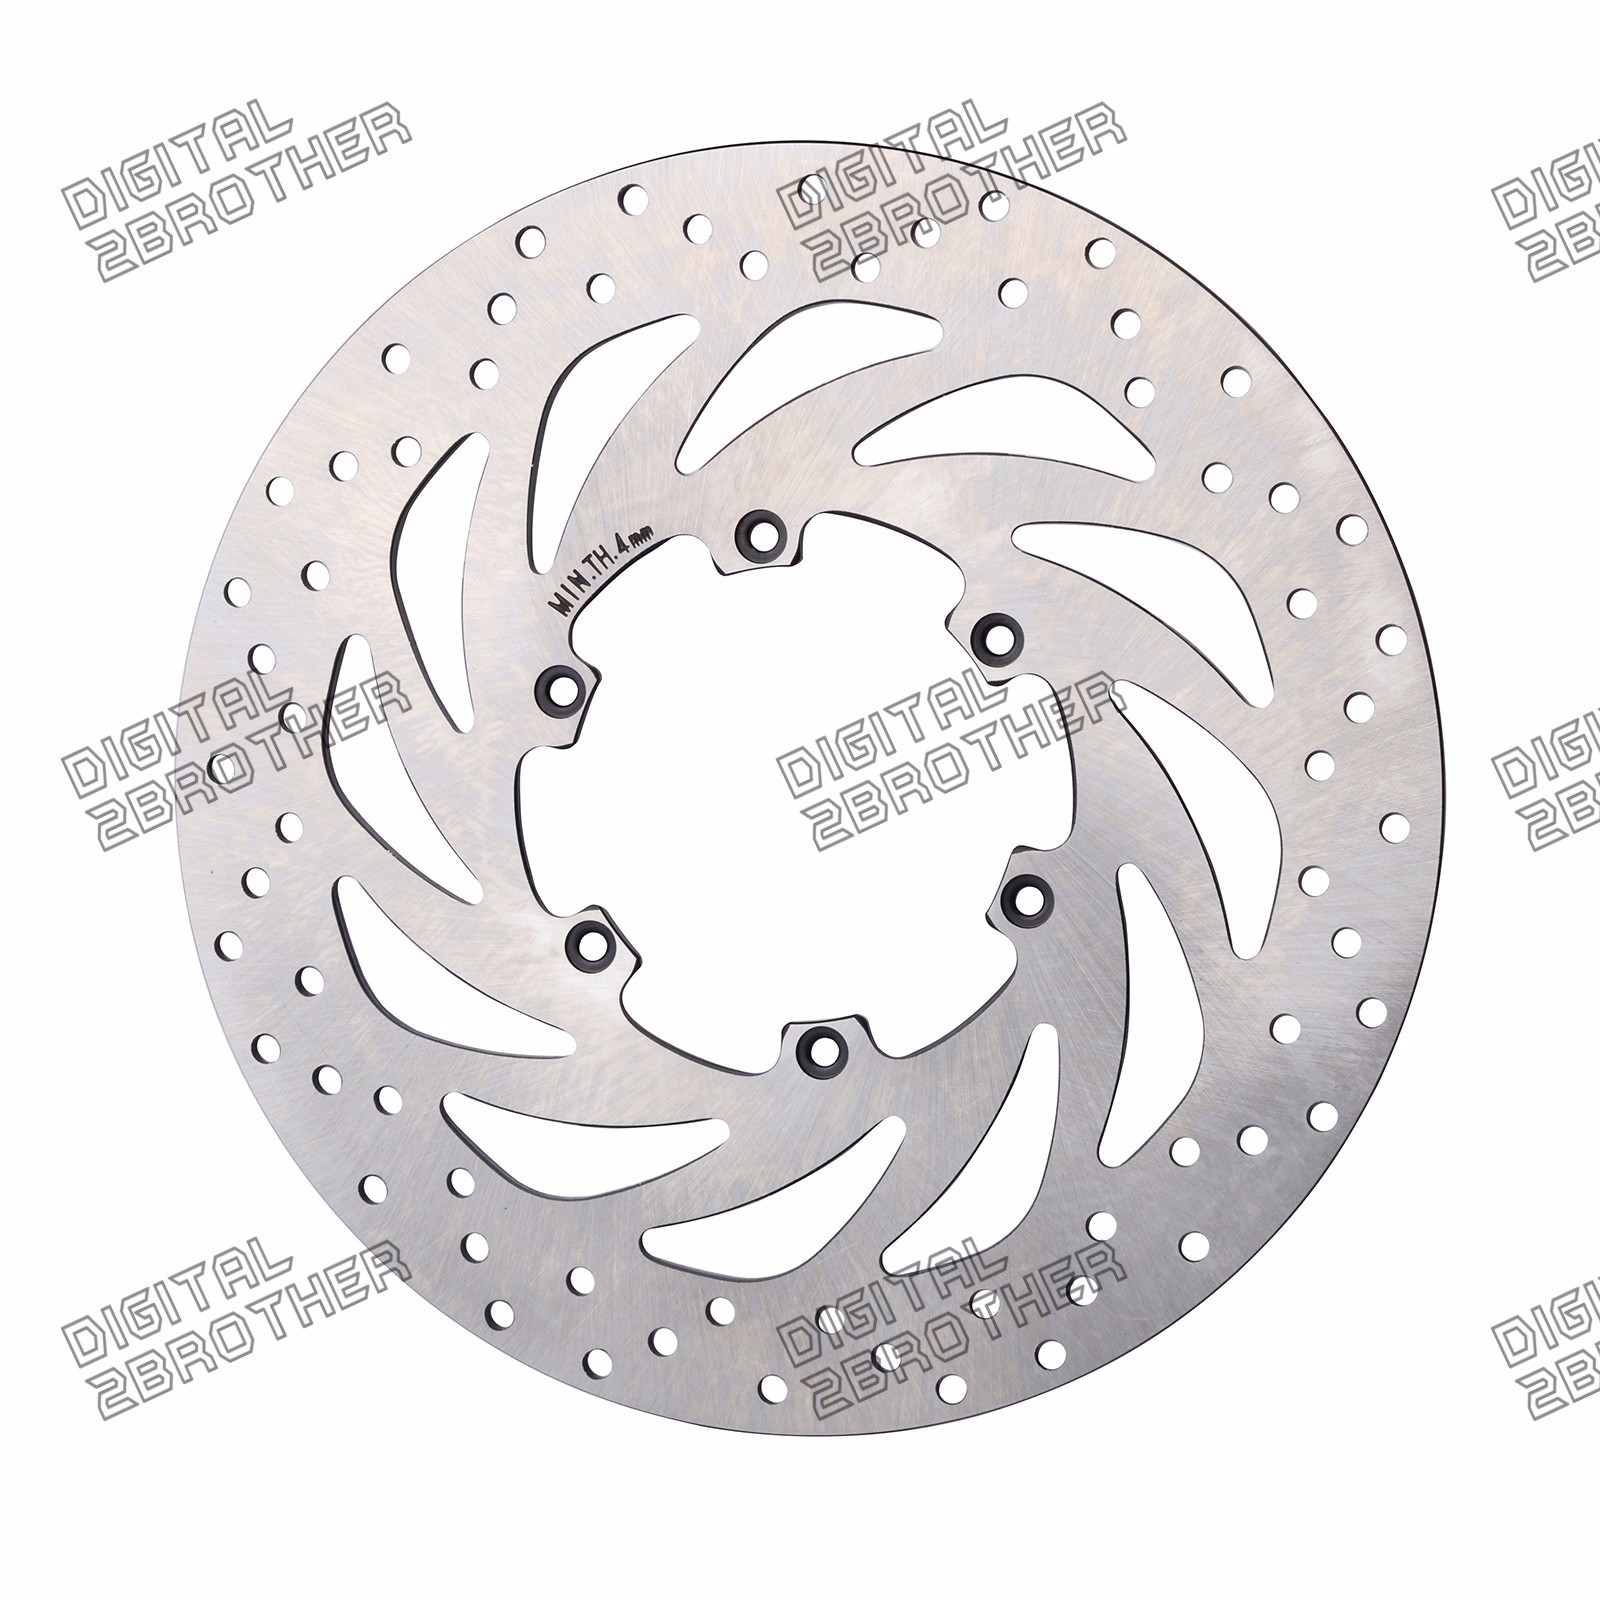 front brake disc rotor steel for bmw f650 gs daka abs f800 gs abs BMW F650GS front brake disc rotor steel for bmw f650 gs daka abs f800 gs abs adventure abs